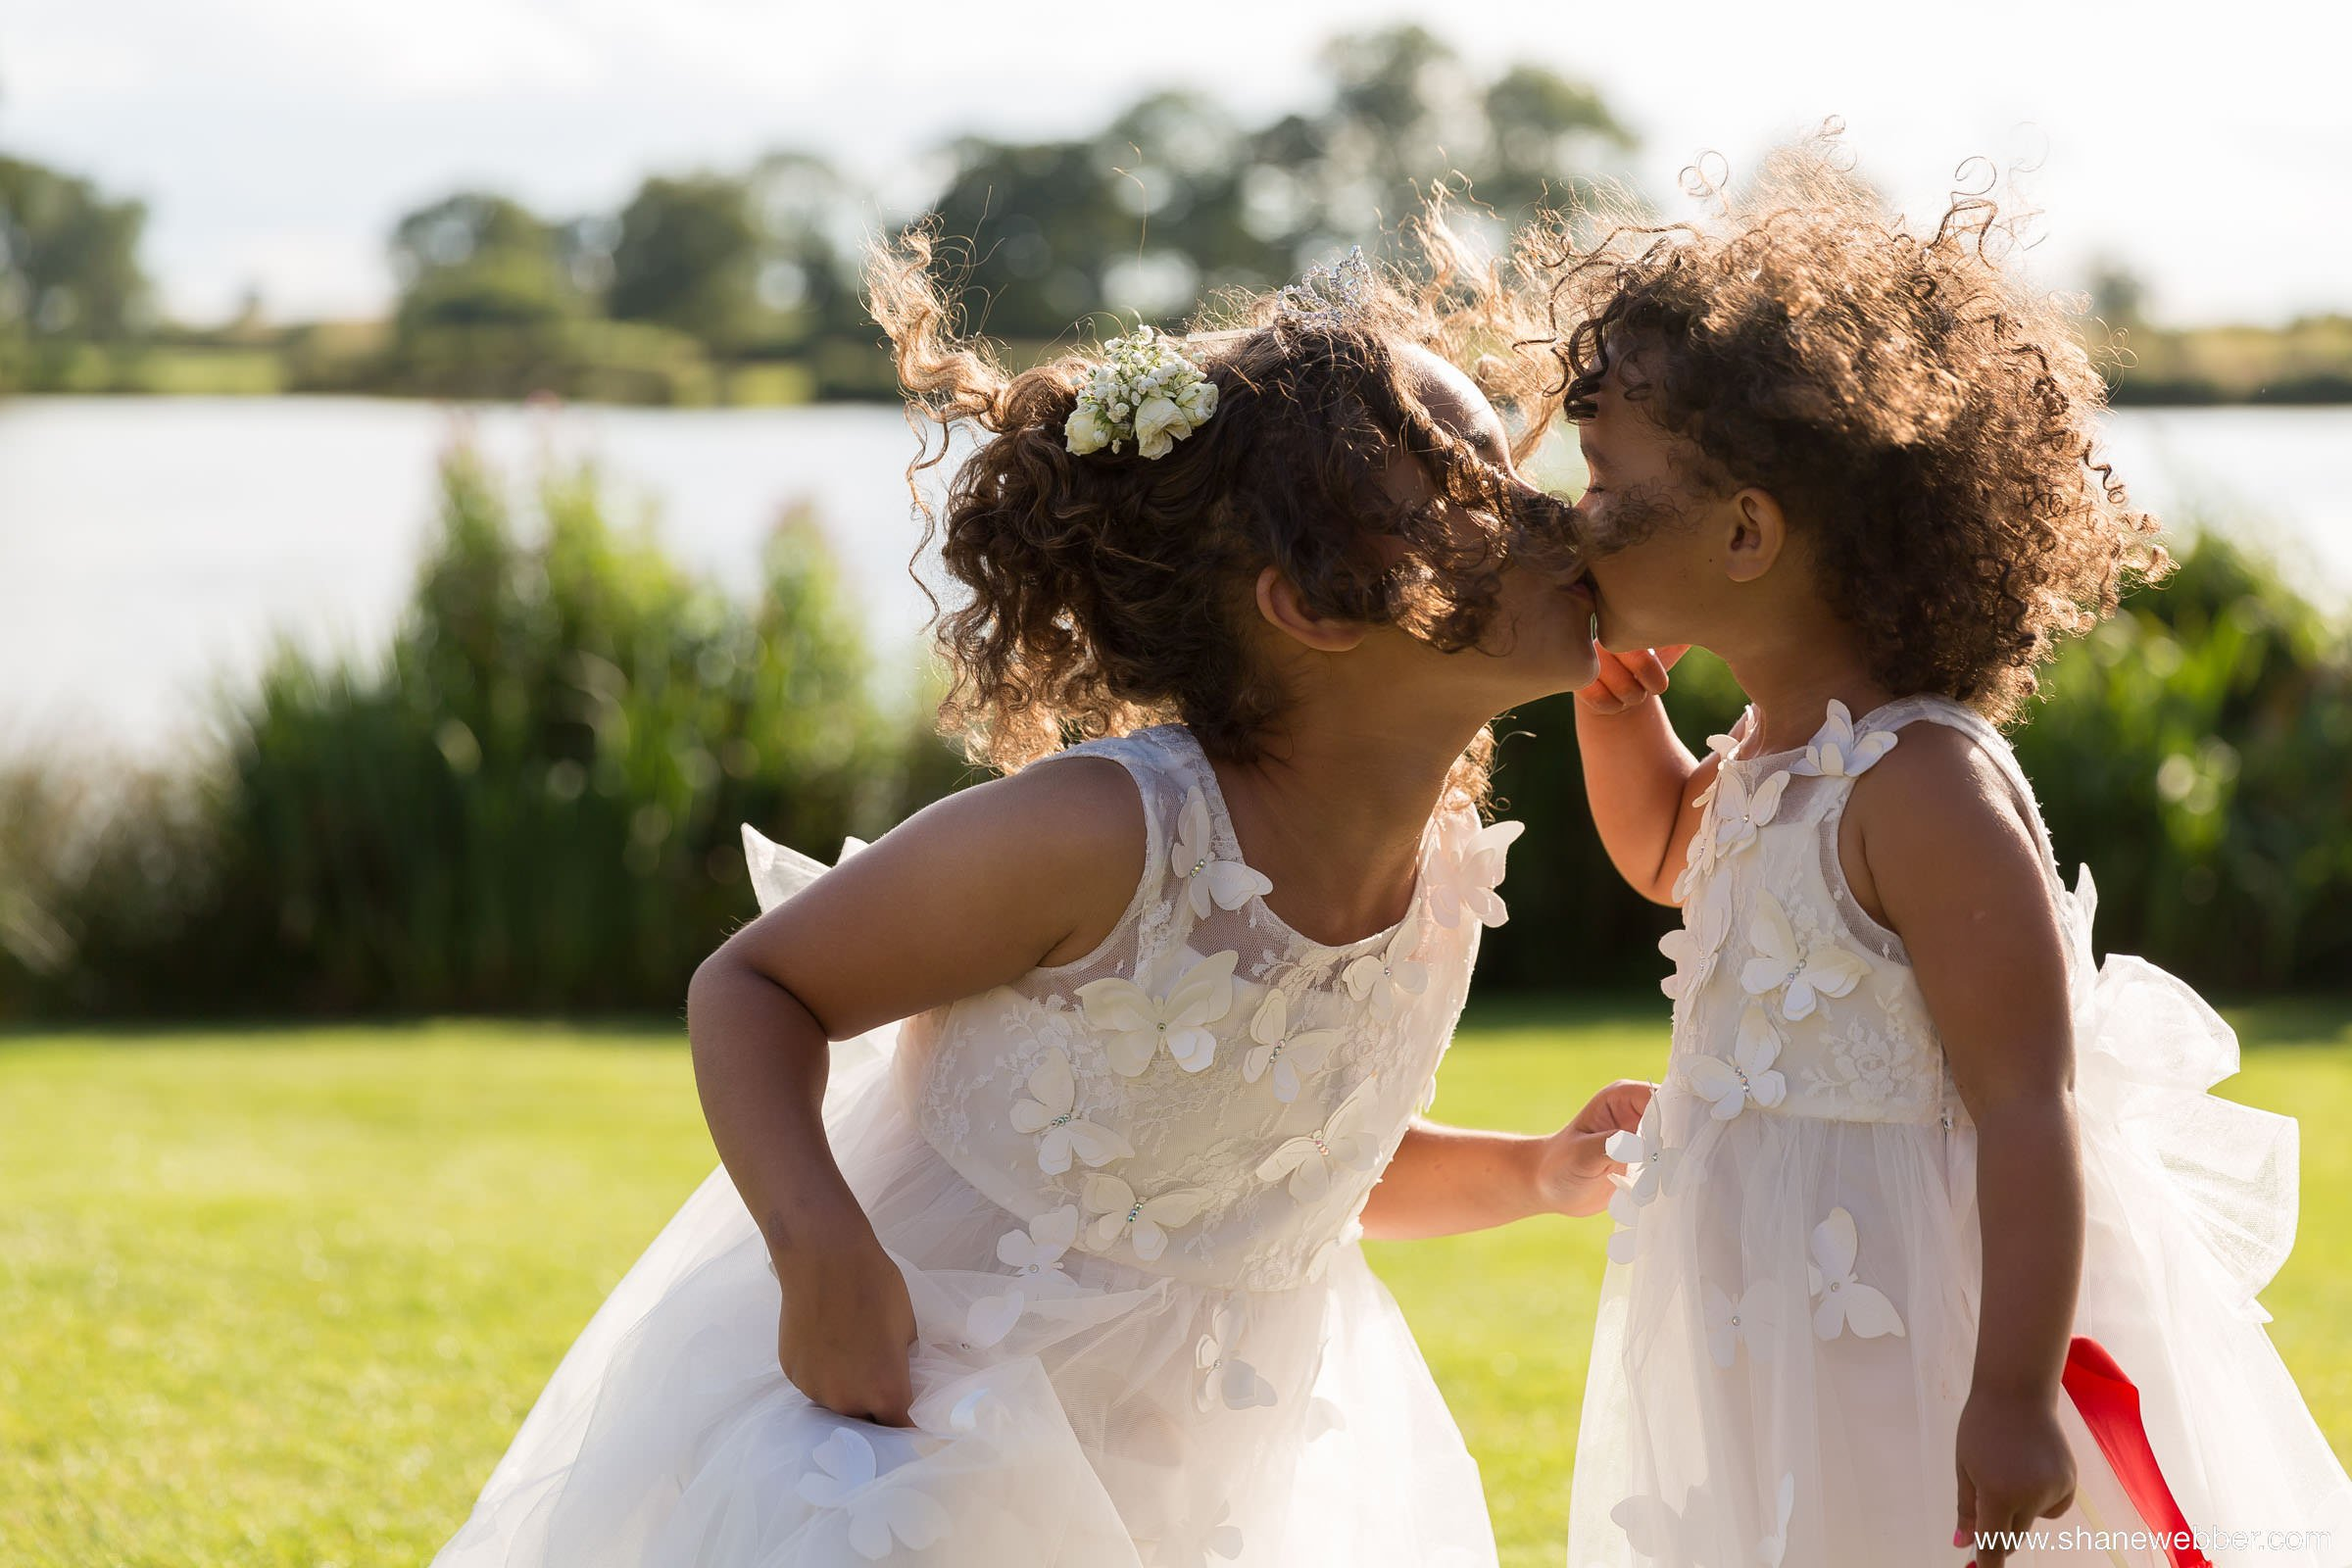 Cute flower girls at wedding